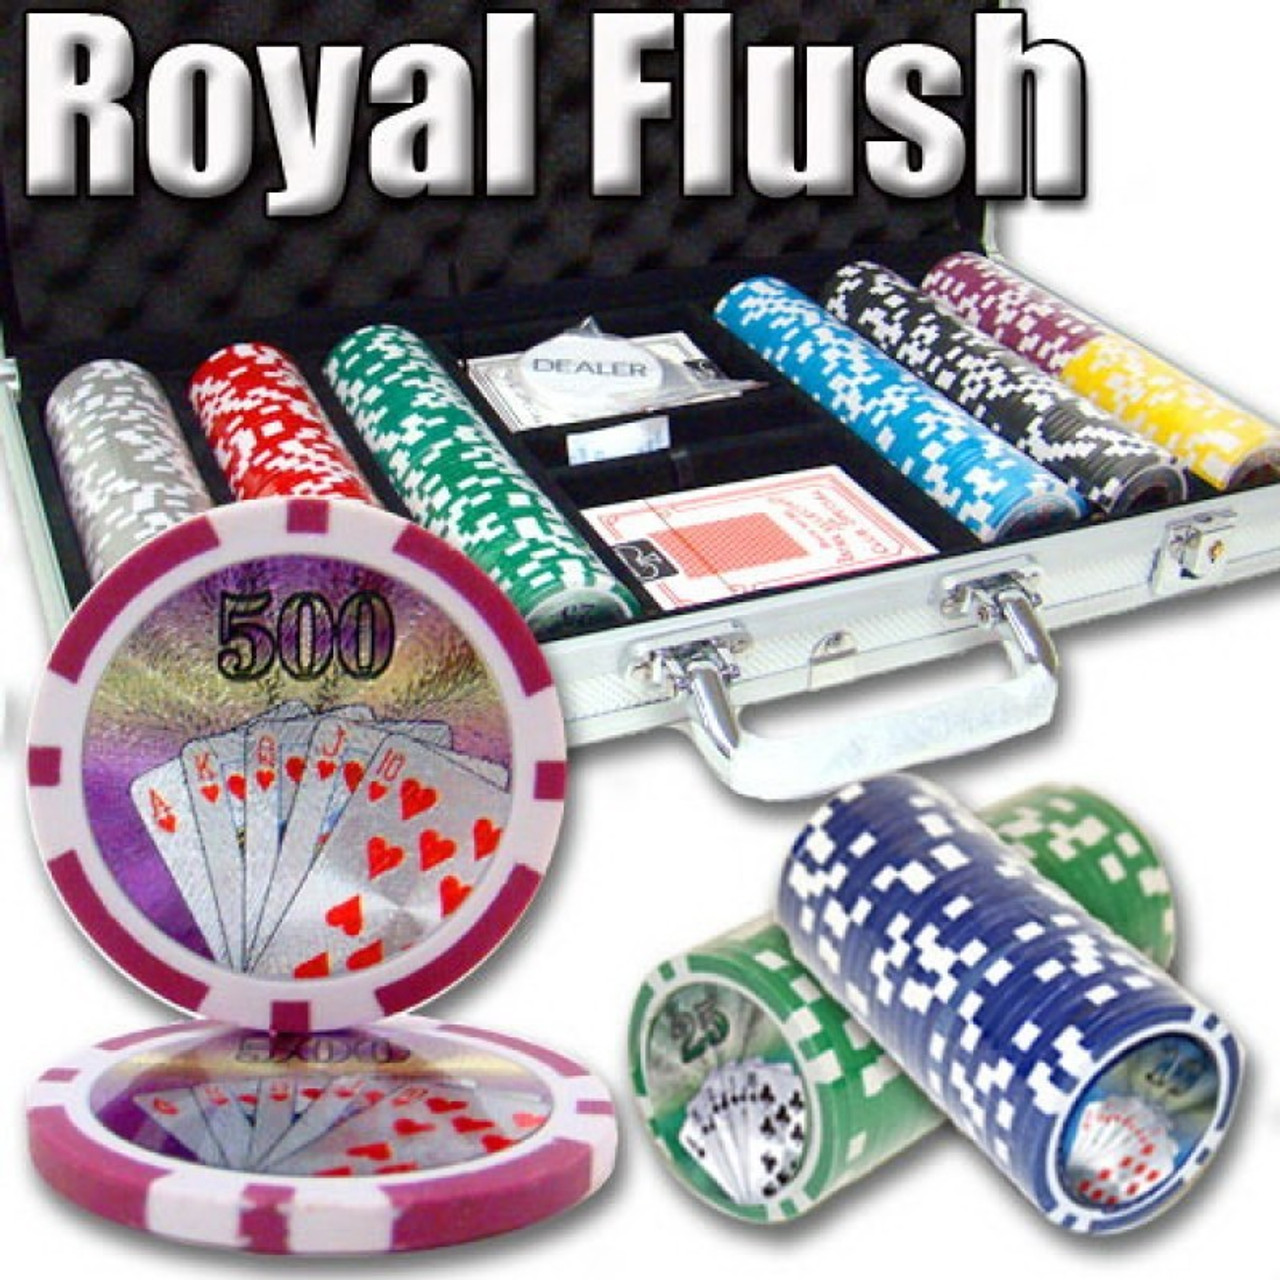 Poker Chip Set Royal Flush 500pc 11.5g with Carry Case & FREE OFFER